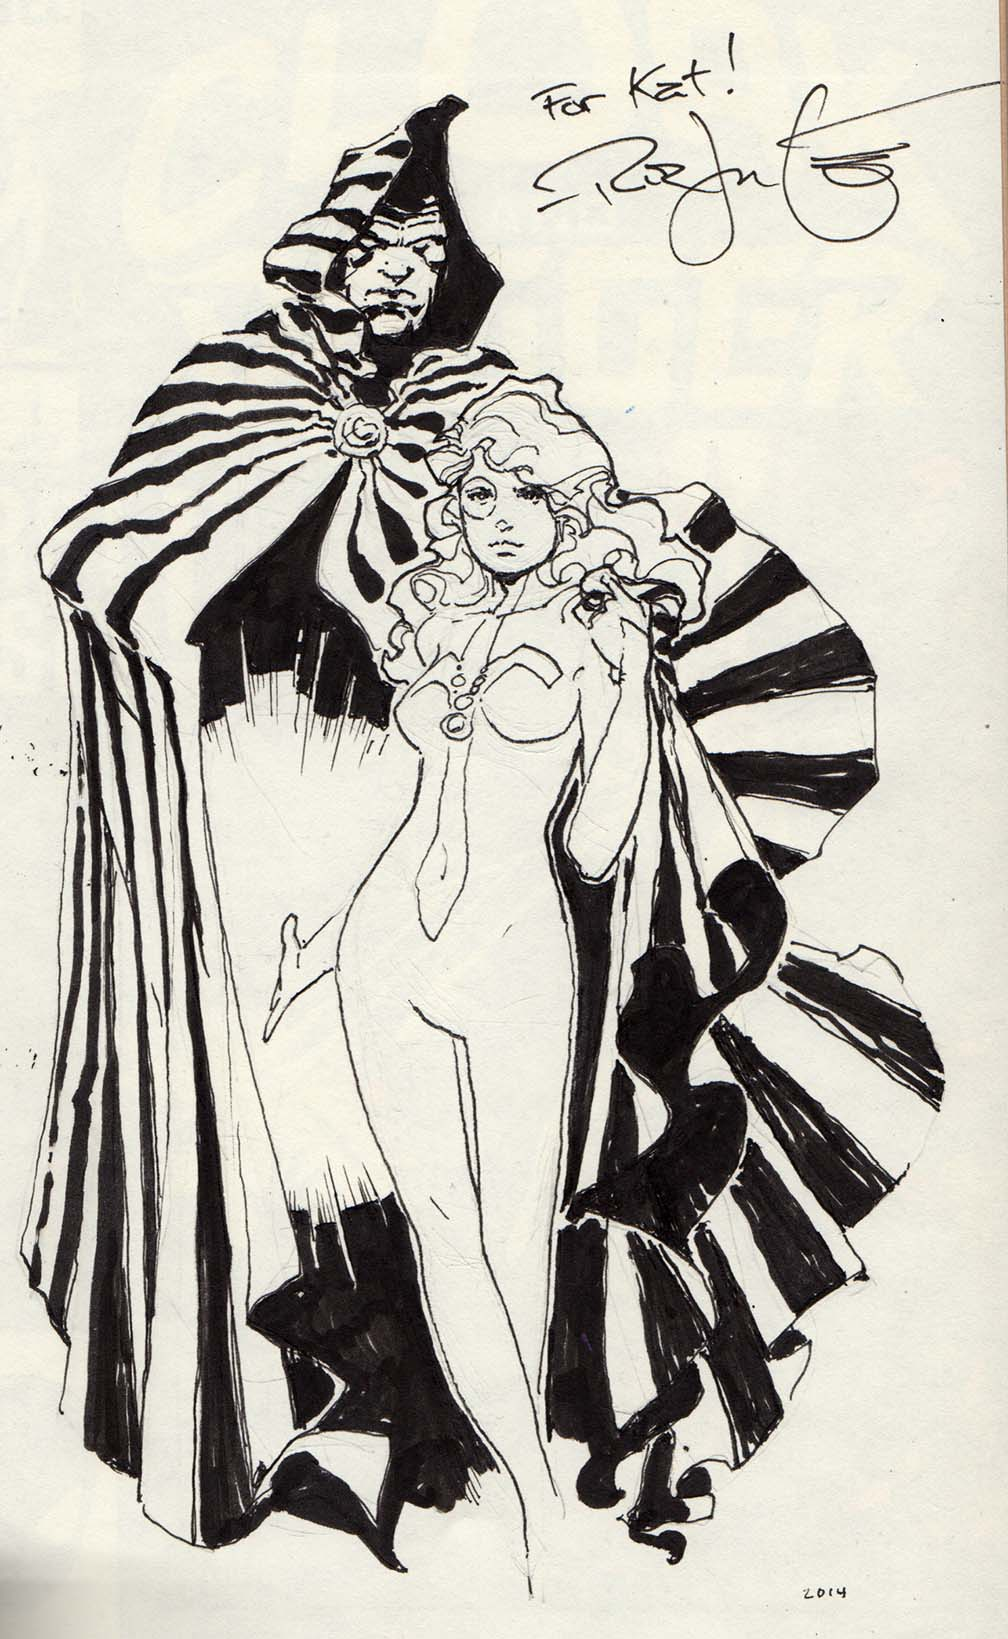 Cloak and dagger dating service